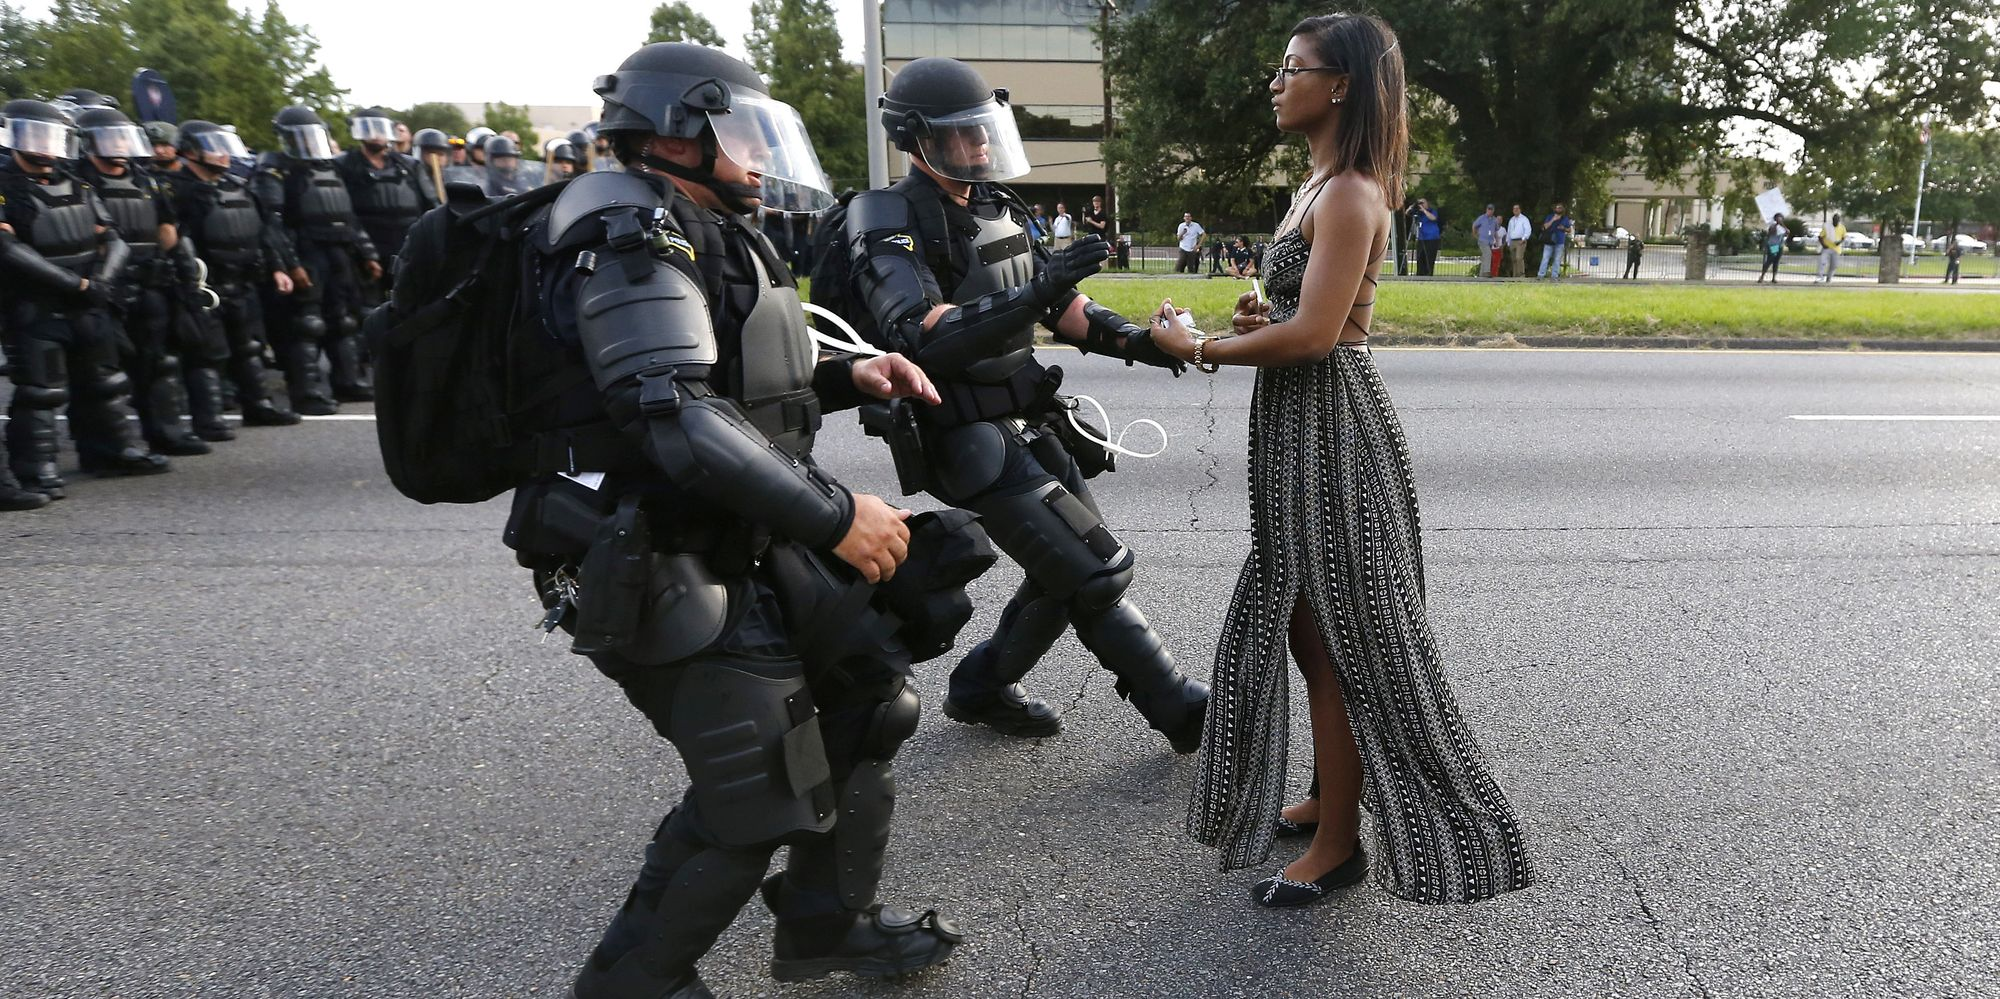 This Black Lives Matter Photo Should Be Seen Around The World